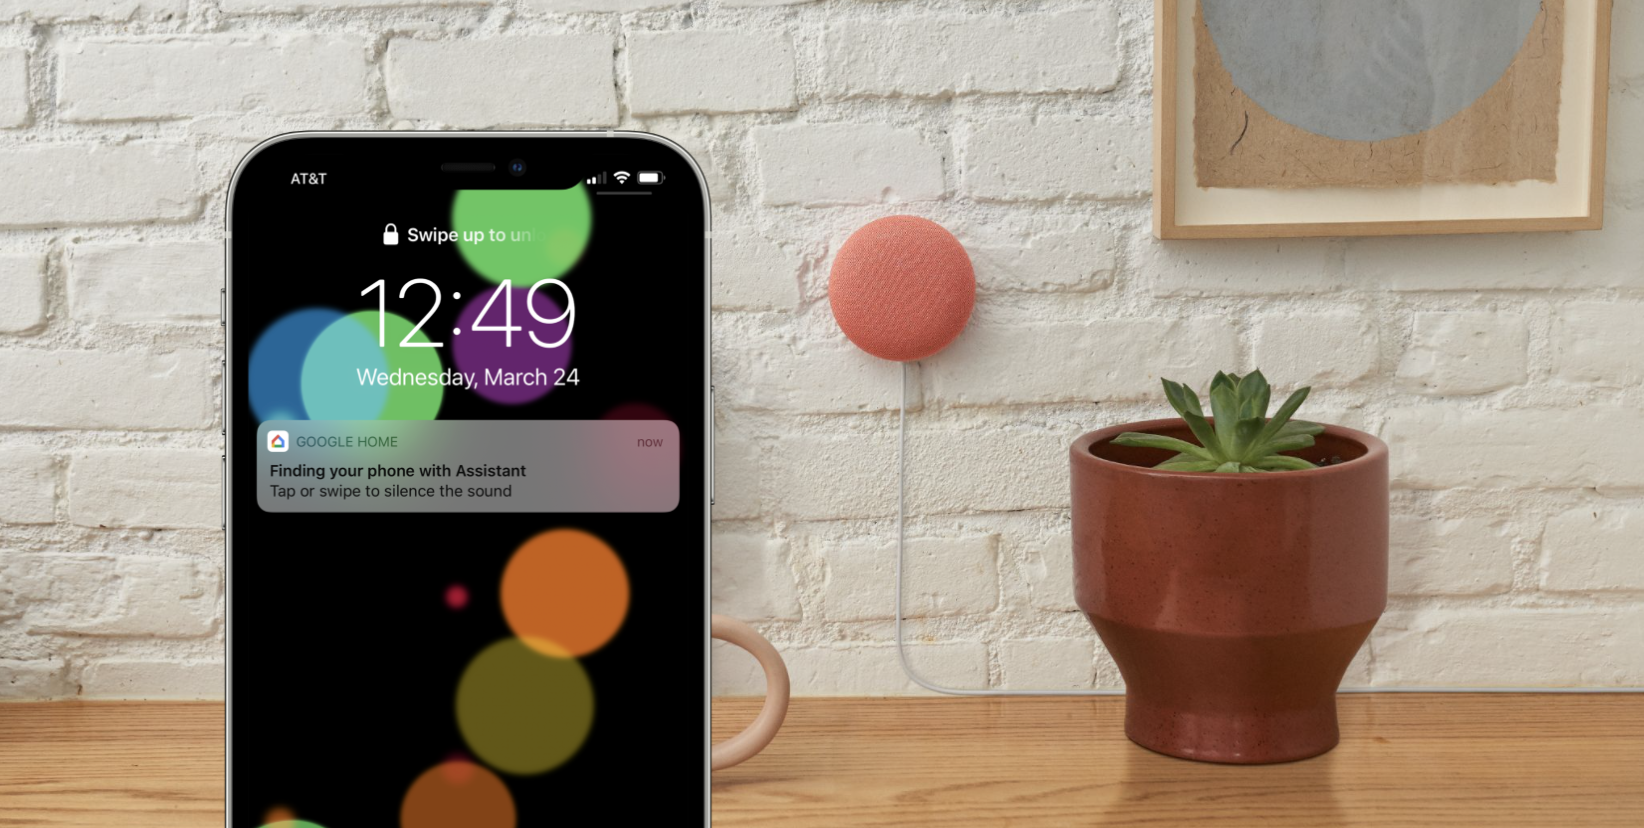 Hey Google, find my iPhone! Google Assistant's new trick scales the wall with Apple     - CNET